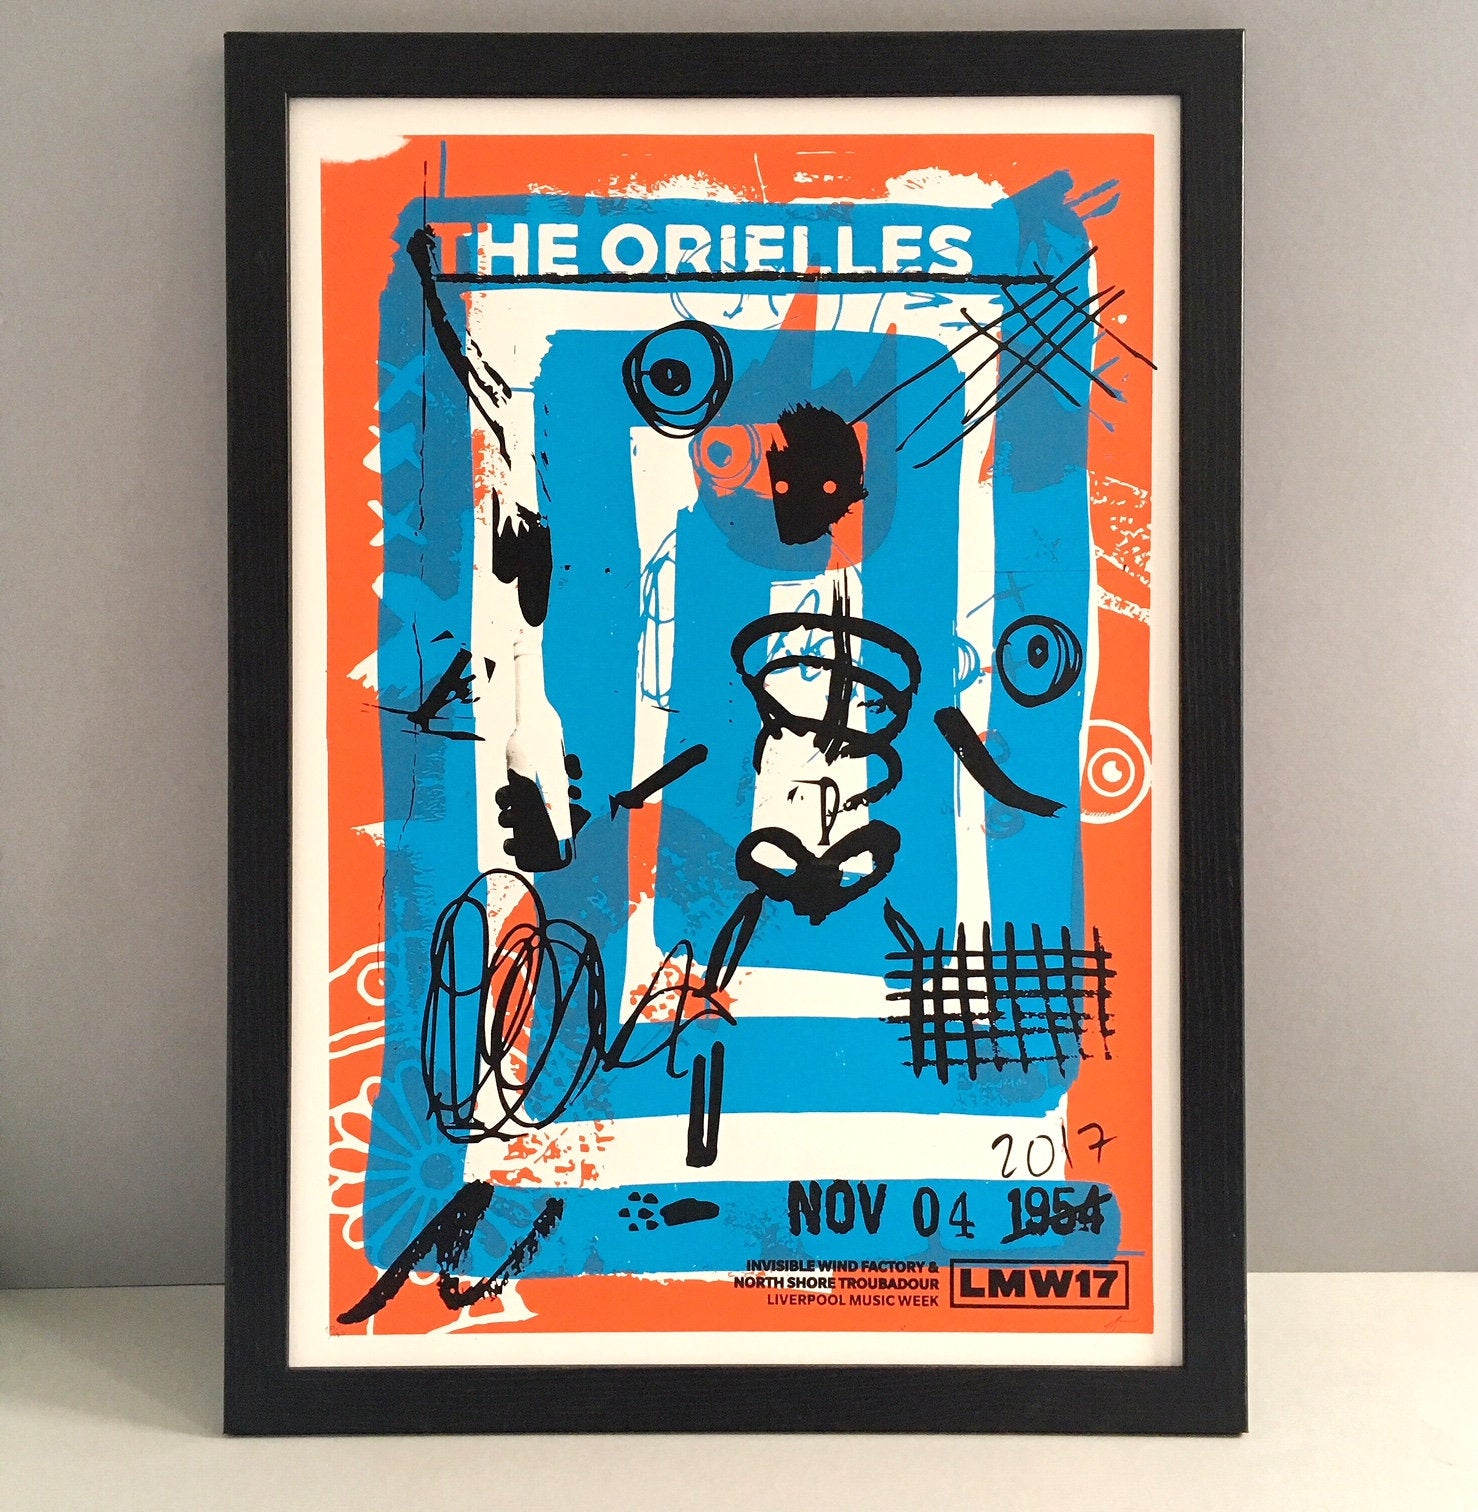 The Orielles Gig Poster